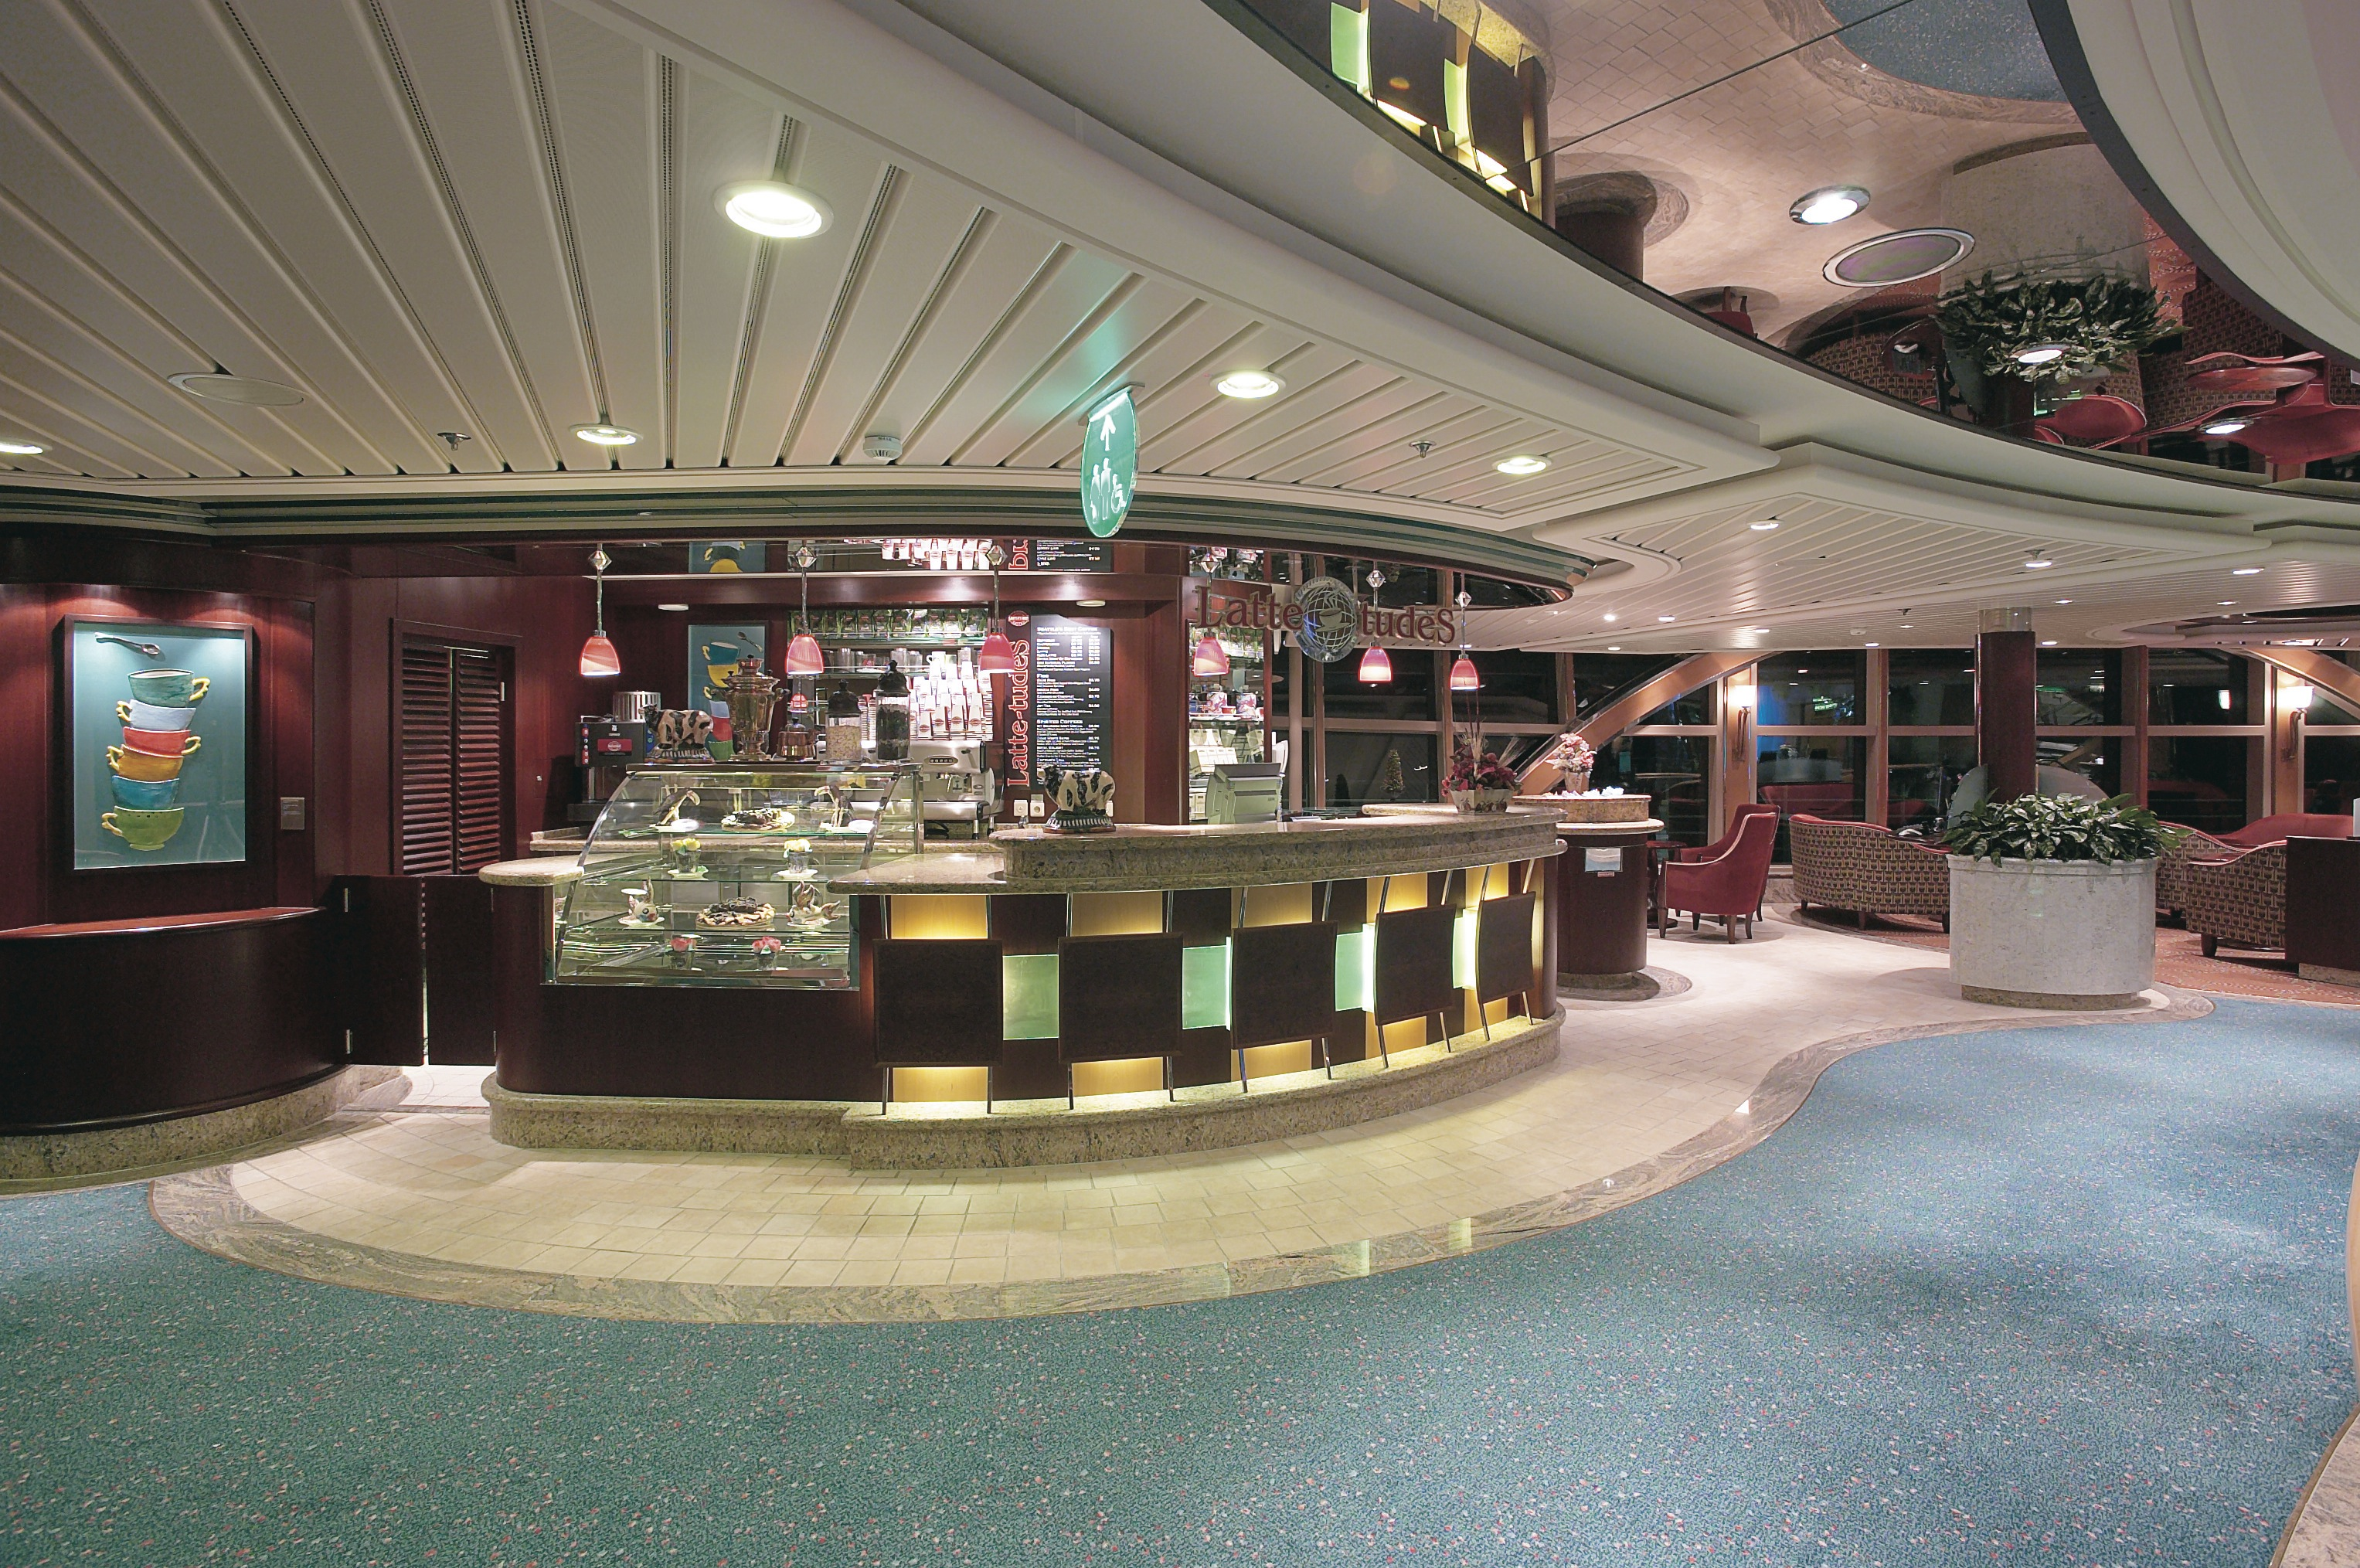 Royal Caribbean International Jewel of the Seas Interior LatteTudes 2.jpeg